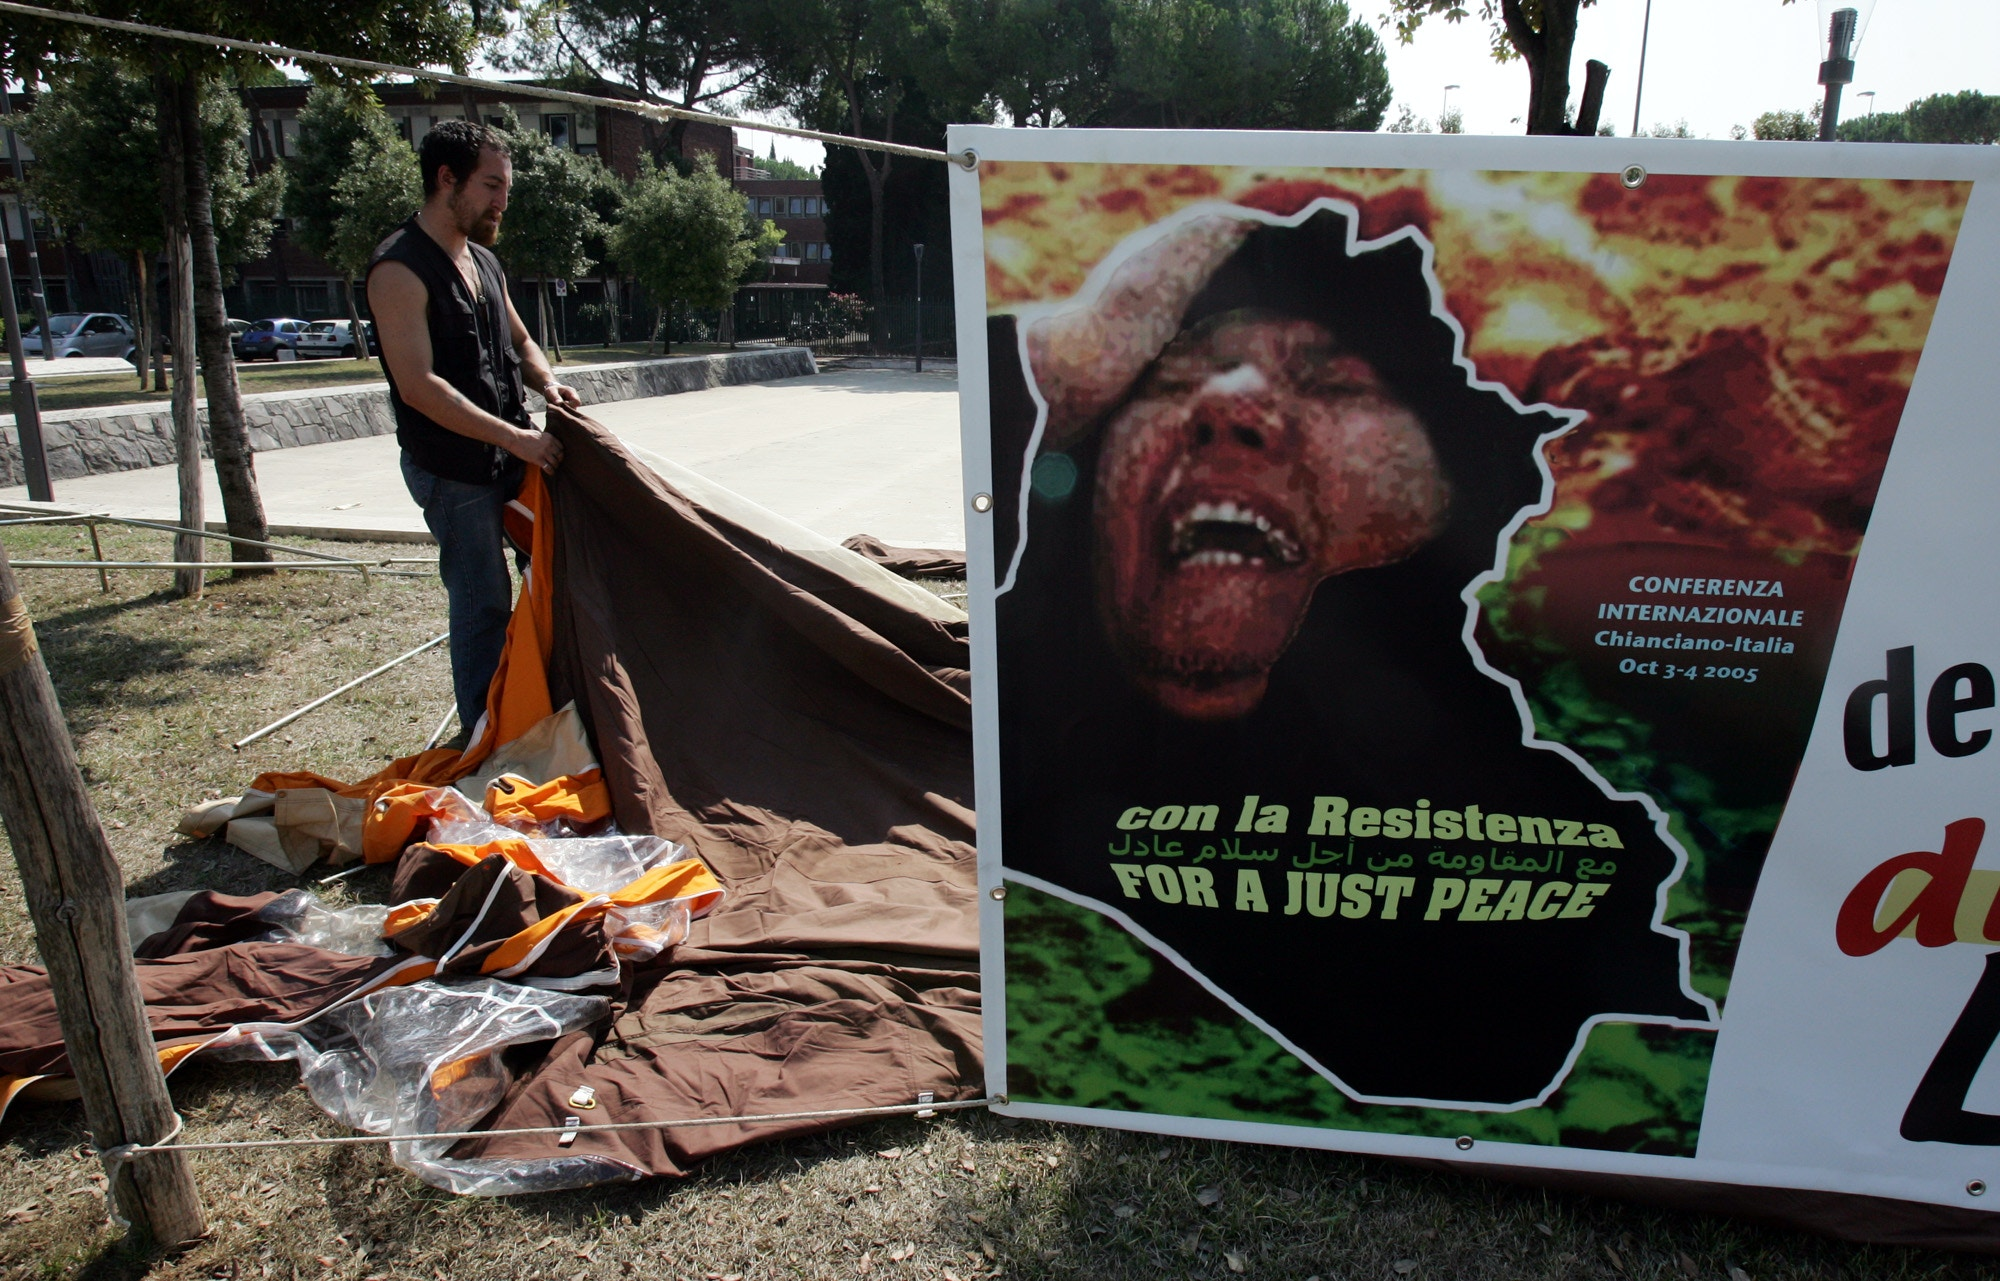 An anti-imperialist activist sets a tent in front of the Italian Foreign Ministry building  in Rome, Thursday, Sept. 1, 2005. Members of the Anti-Imperialist camp(Campo Antimperialista) sterted the hunger strike to protest against the decision of Foreign Minister Gianfranco Fini to deny Visas to nine Iraqi invited by the anti-imperialist organization to join  their meeting that will start in Chianciano Terme Oct. 1. (AP Photo/Gregorio Borgia)